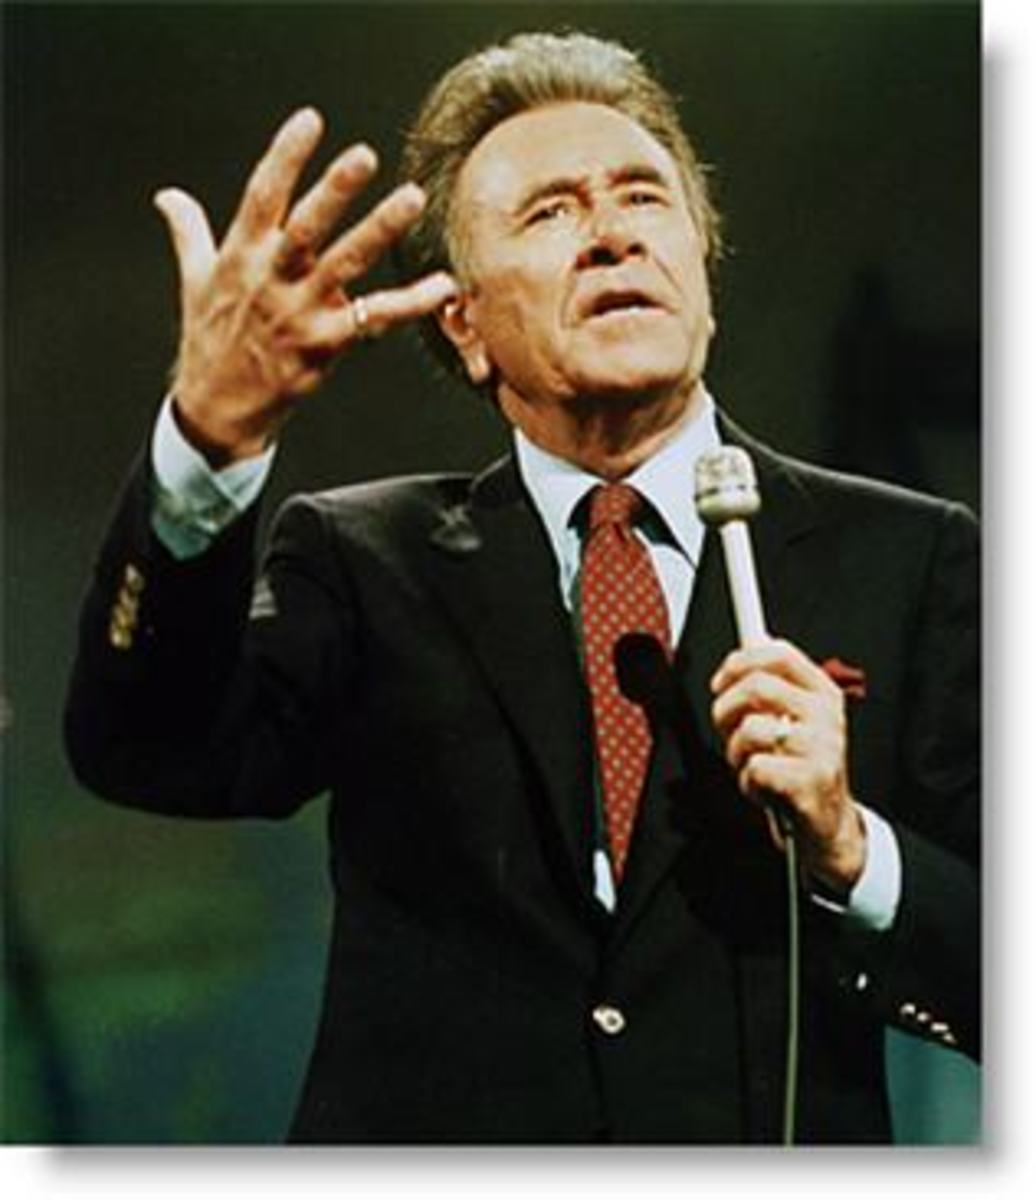 Televangelists led the charge against evolution in the 1980s in the moral majority crusade to bring creationism to the fore.